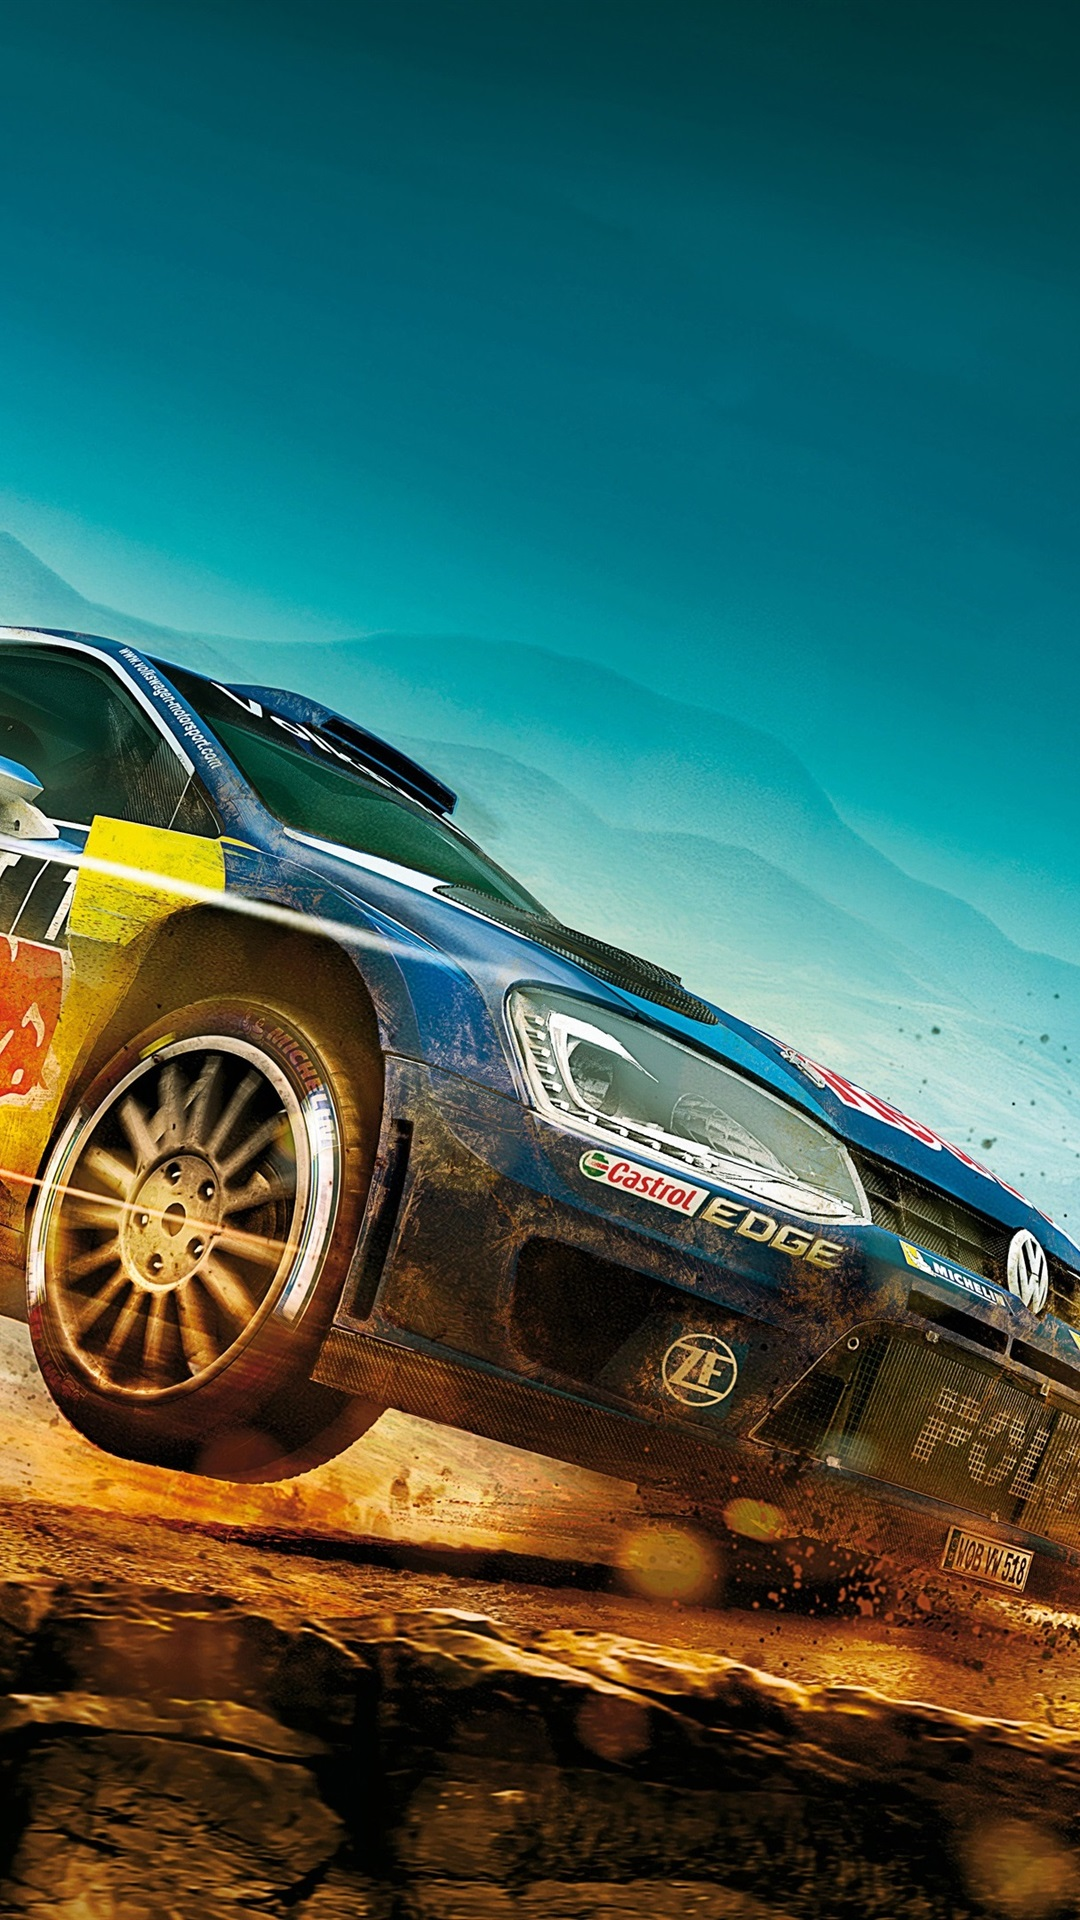 Dirt Rally Volkswagen Polo Car Sports Racing 1080x1920 Iphone 8 7